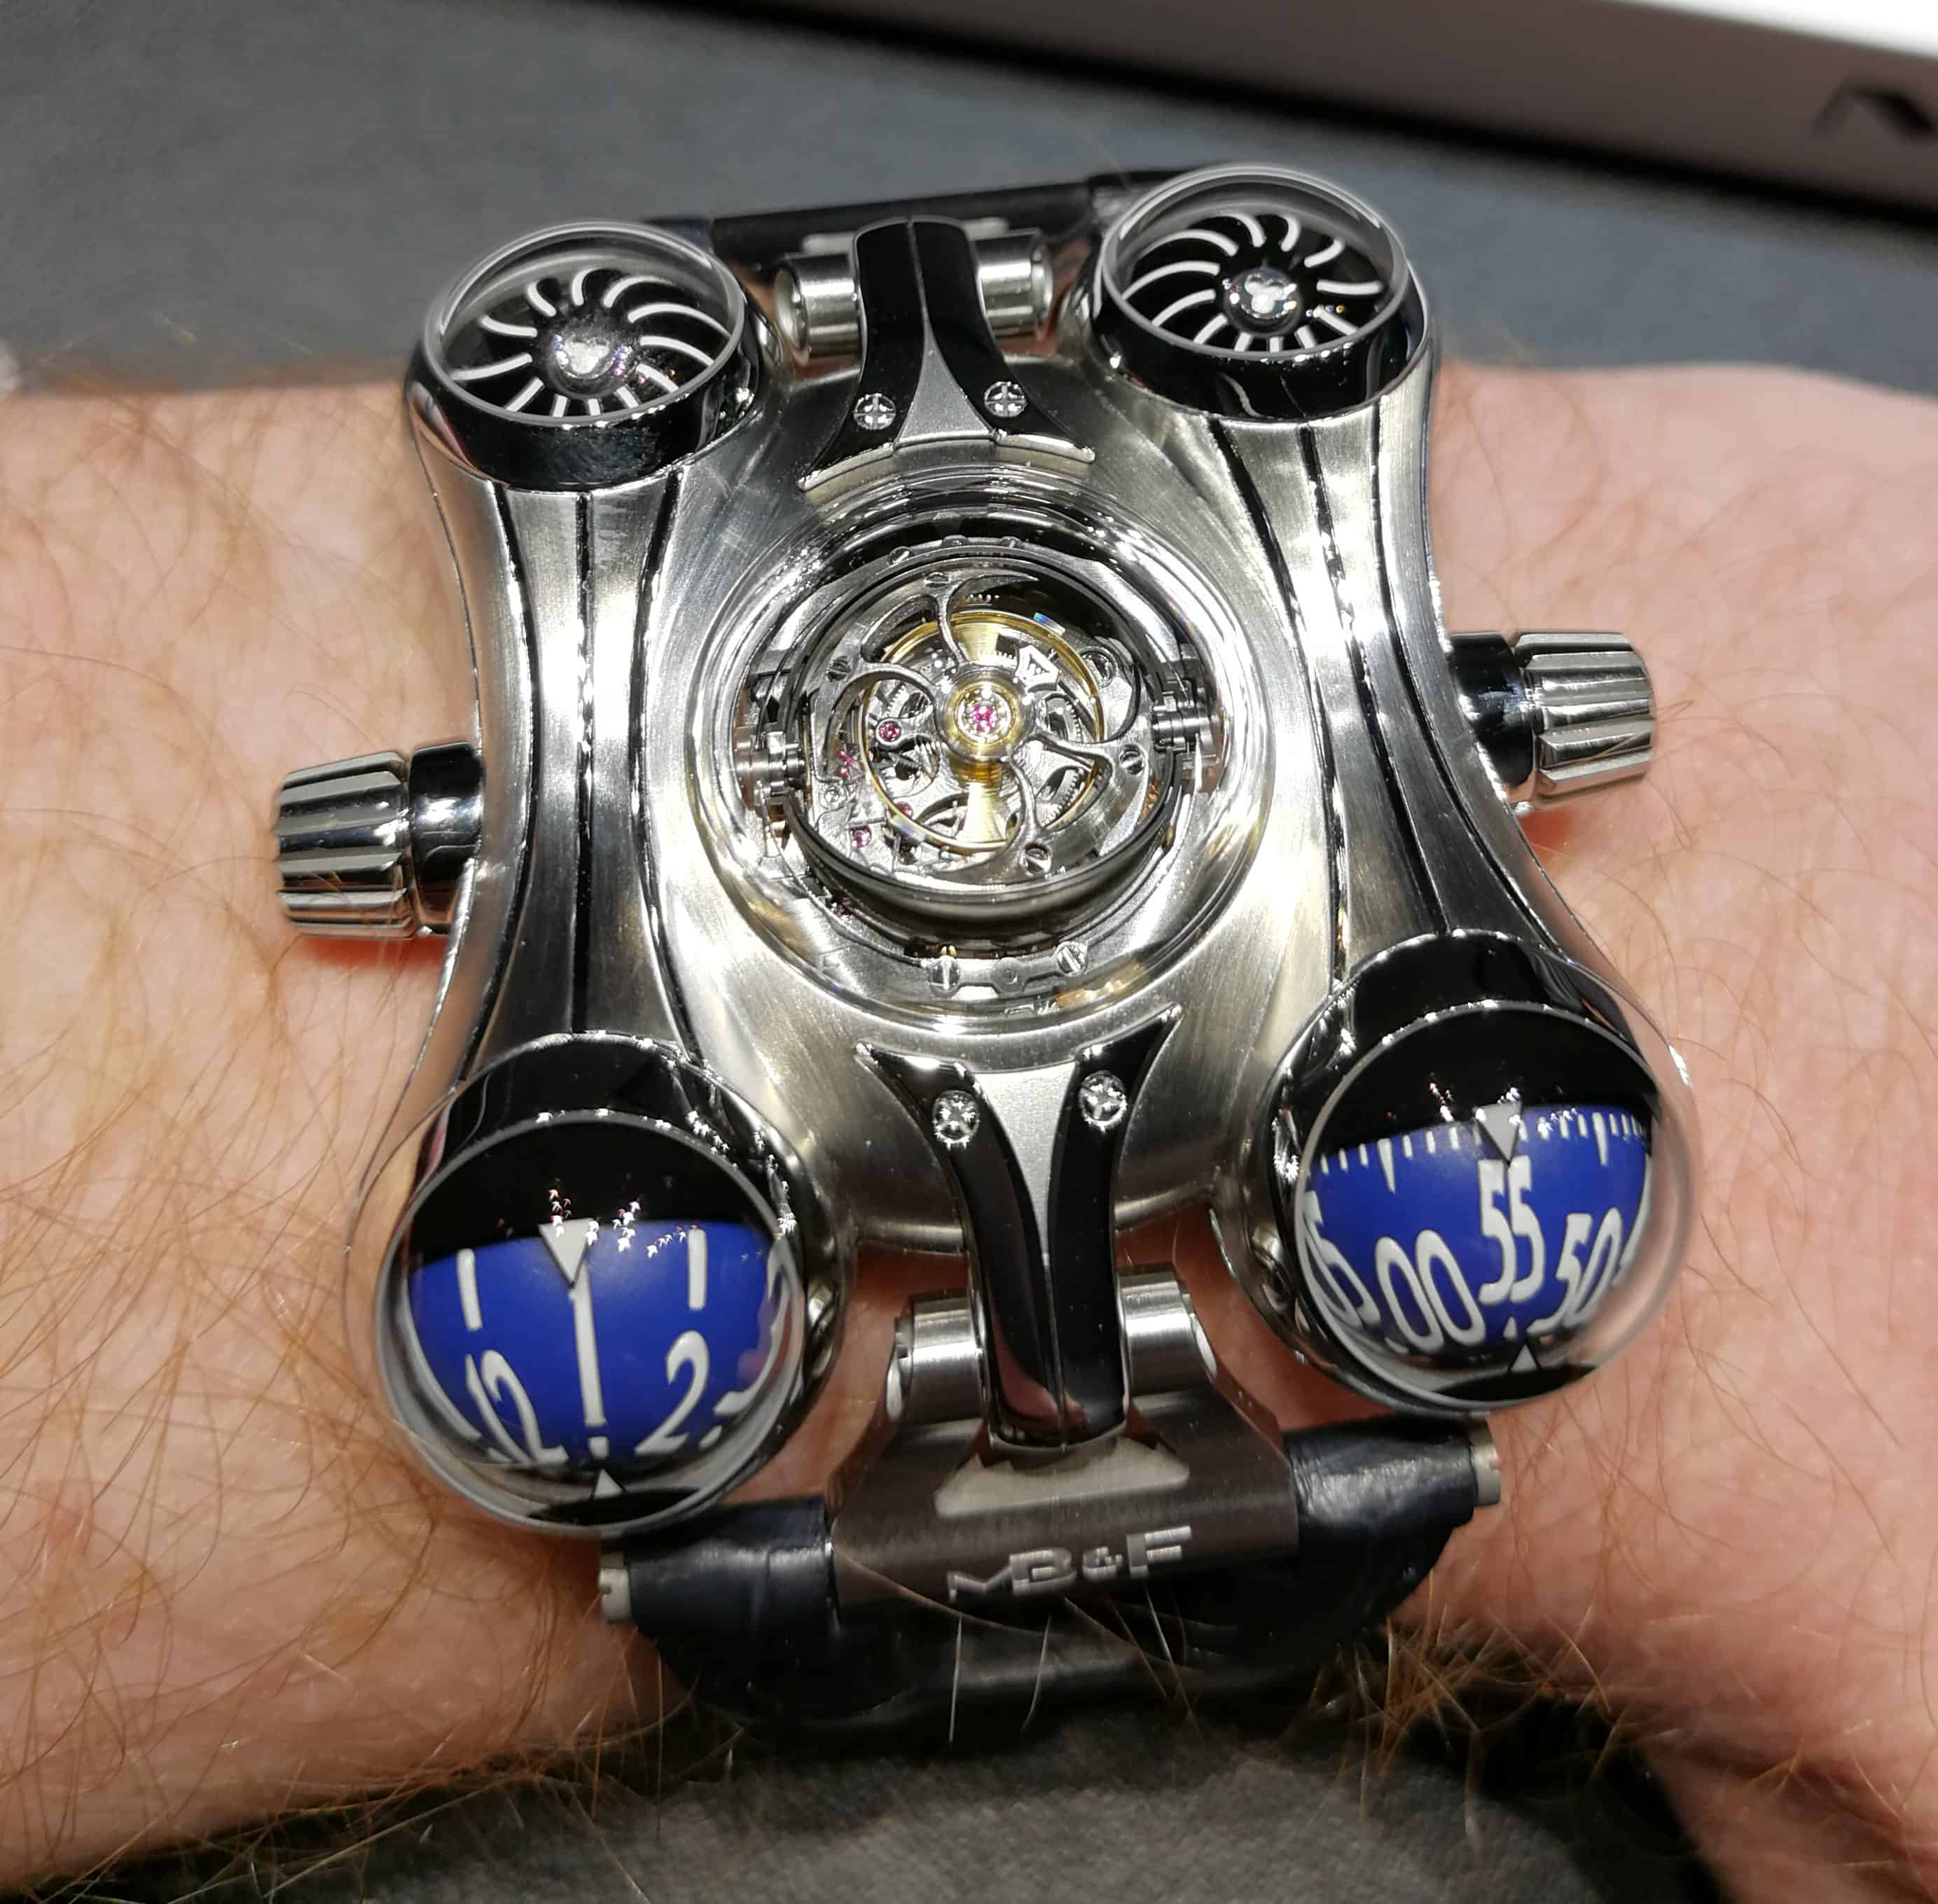 MB&F HM6 Final Edition on the Wrist